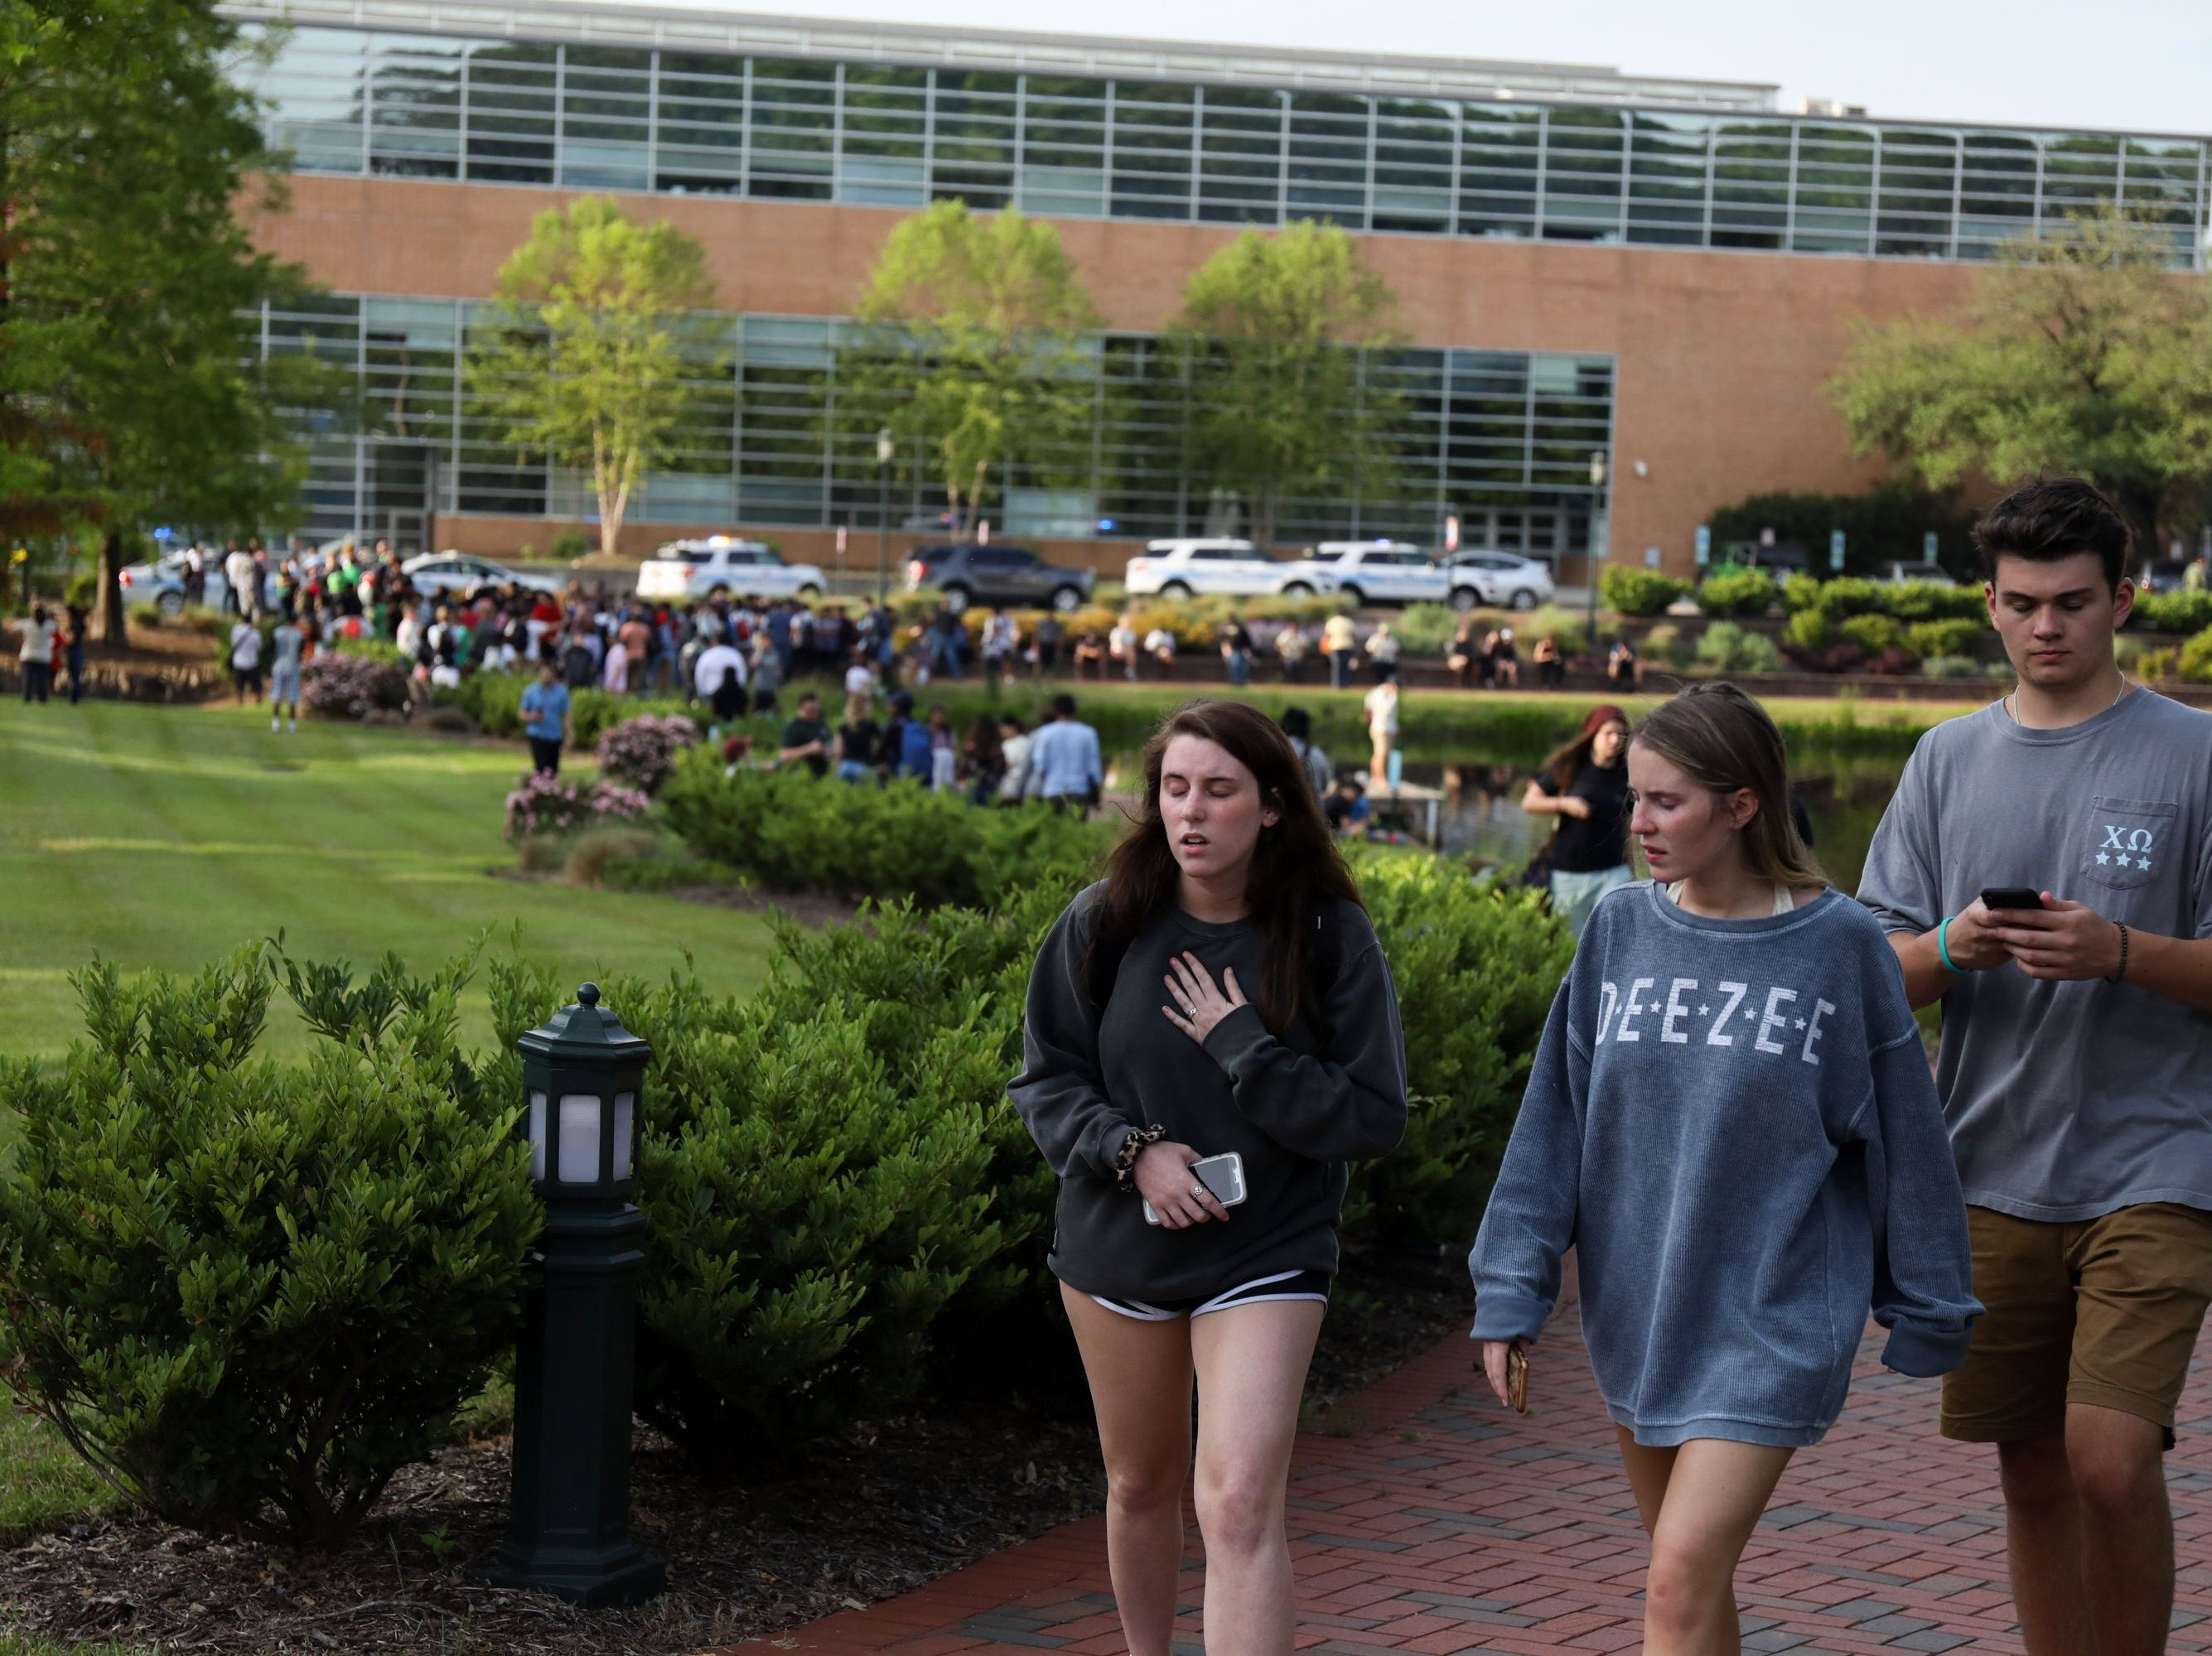 Students and faculty file out of buildings during a lockdown after a shooting on the campus of University of North Carolina Charlotte in University City, Charlotte, on April 30, 2019. - Six people were shot, two of them died on the University of North Carolina Charlotte campus. One person was taken into custody, according to police sources.